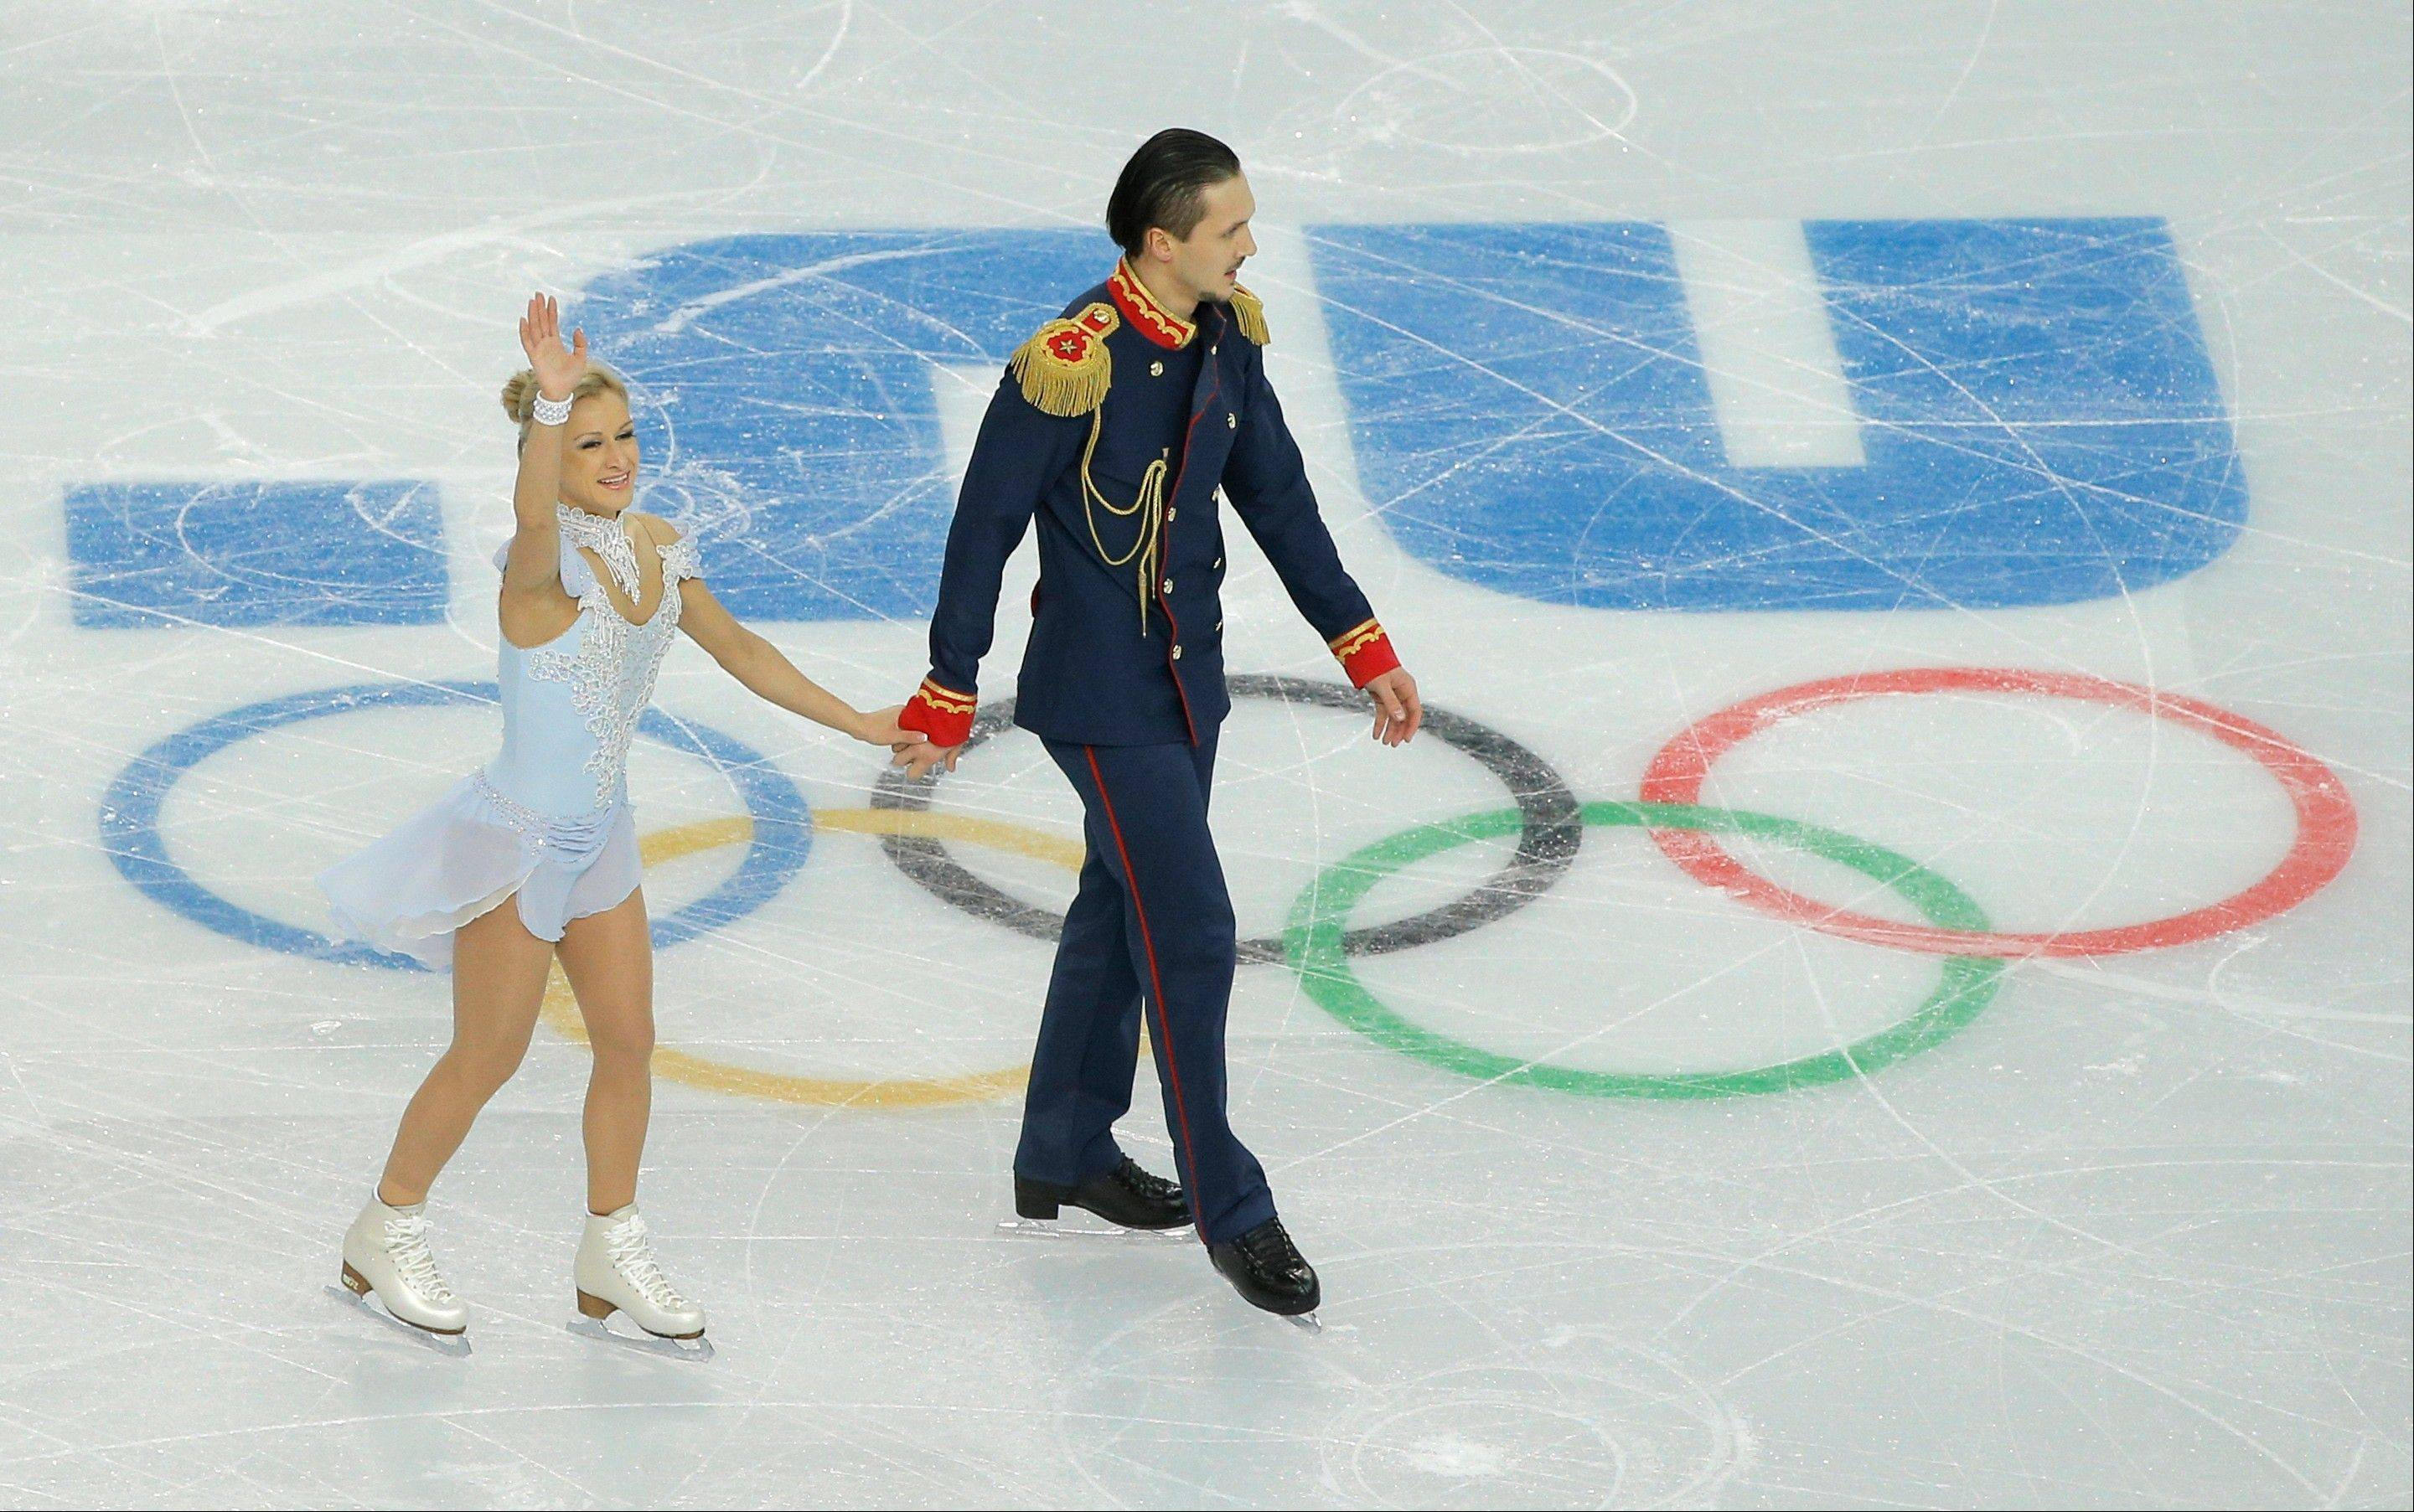 Tatiana Volosozhar, left, waves to spectators after she and Maxim Trankov of Russia competed in the team pairs short program figure skating competition at the Iceberg Skating Palace during the 2014 Winter Olympics.